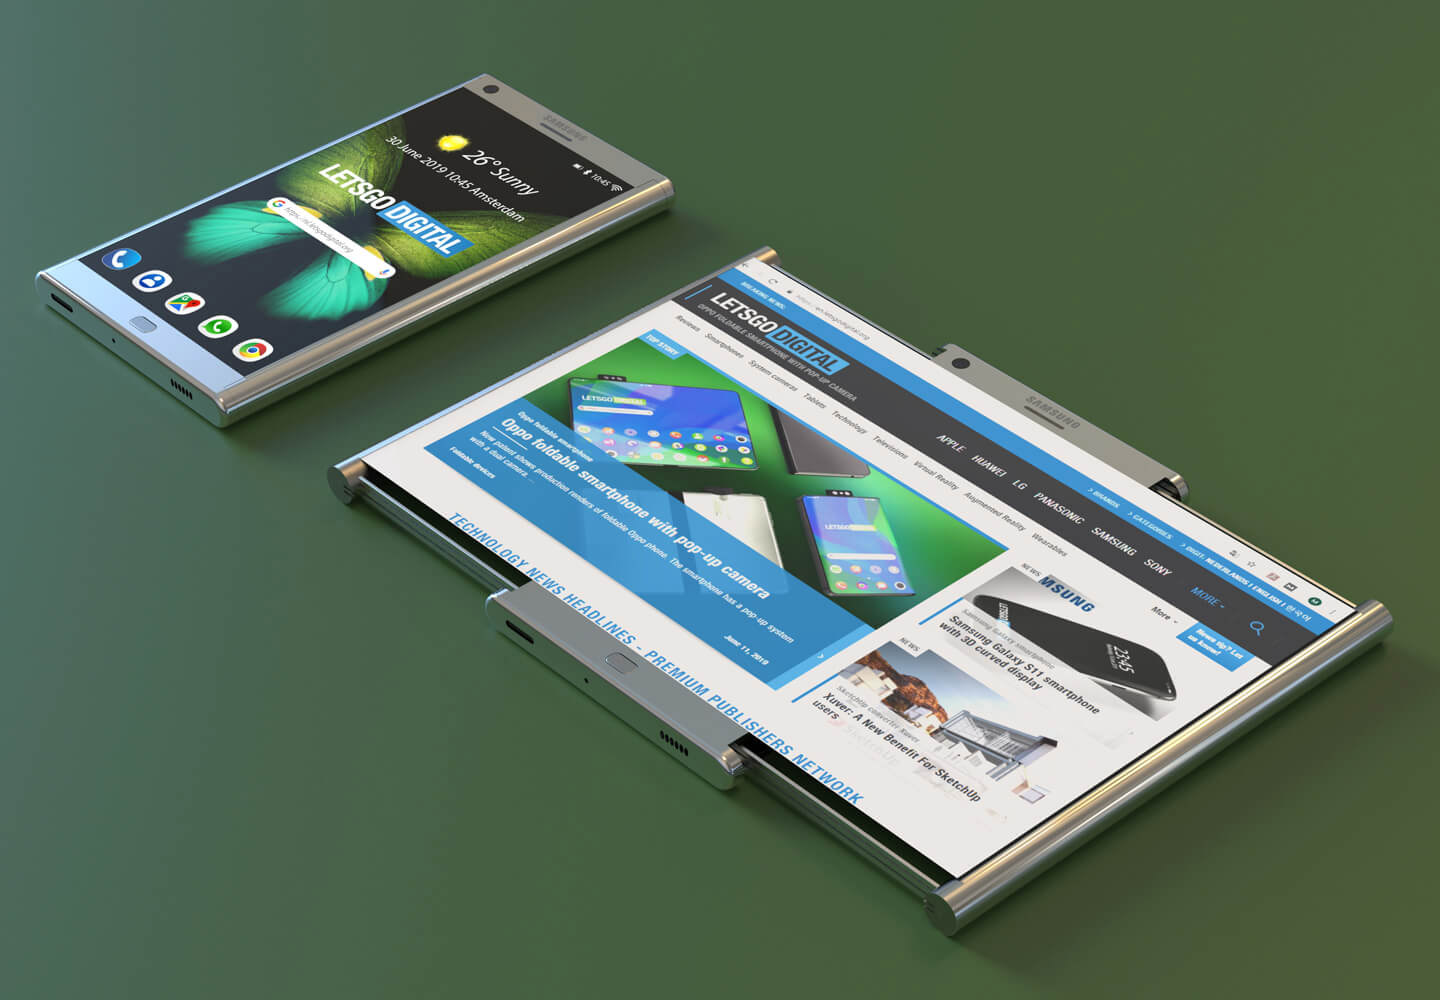 Samsung Smartphone Expandable Display